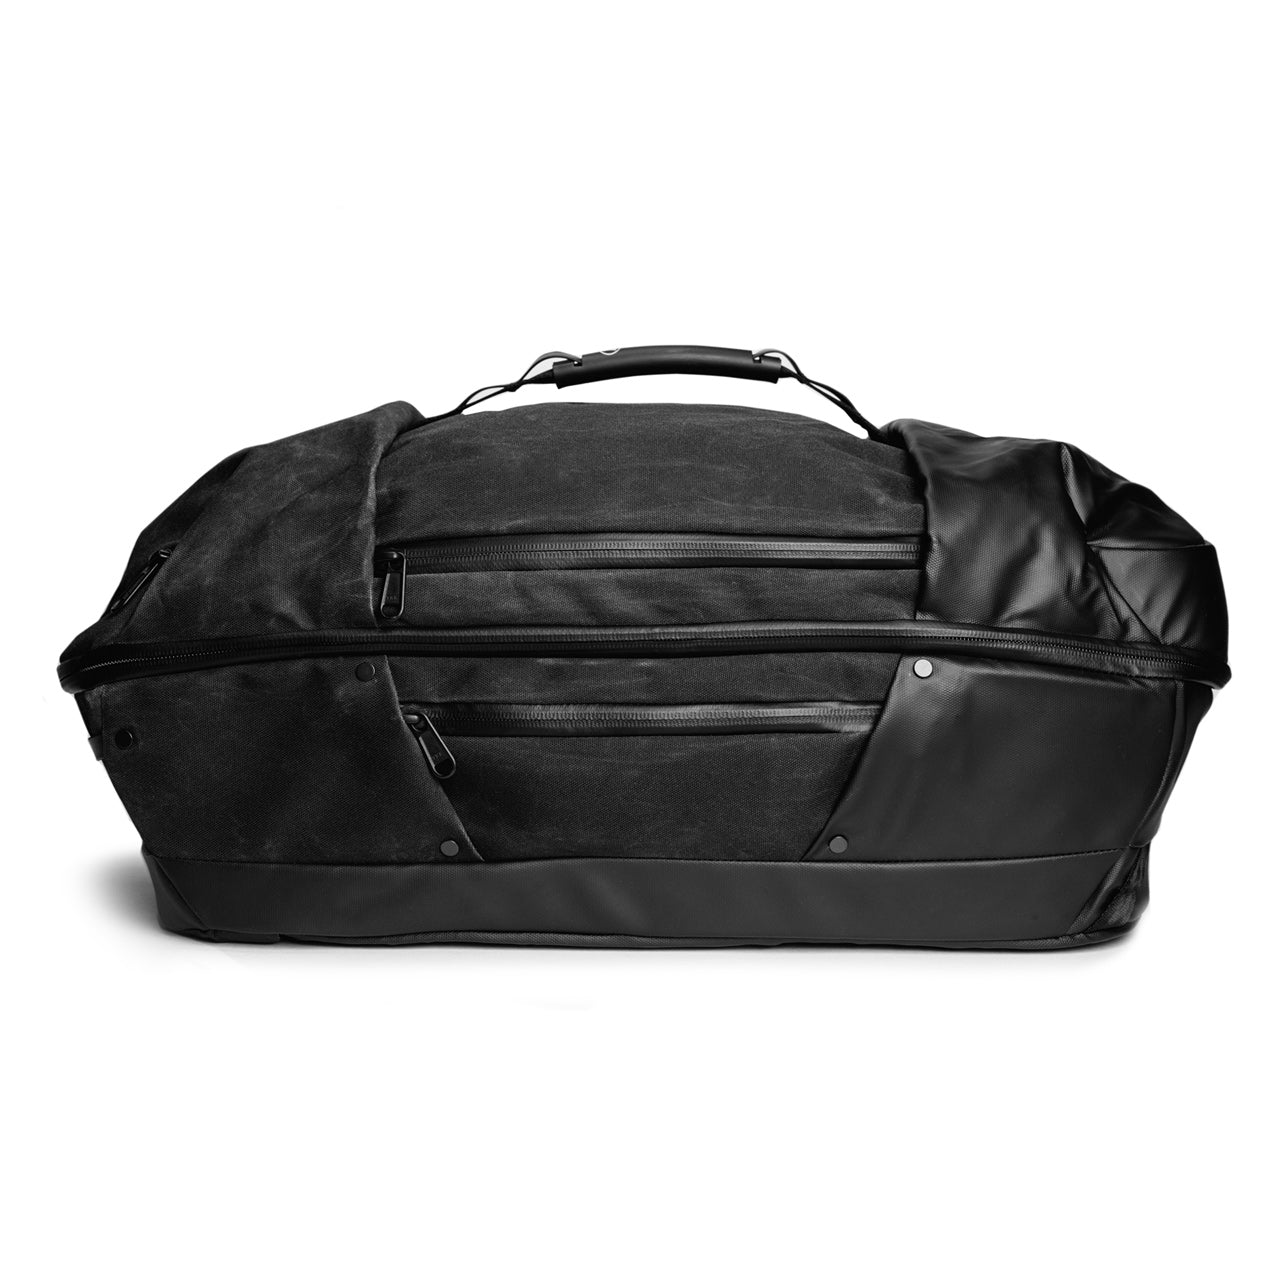 Alchemy Equipment Carry-On Bag